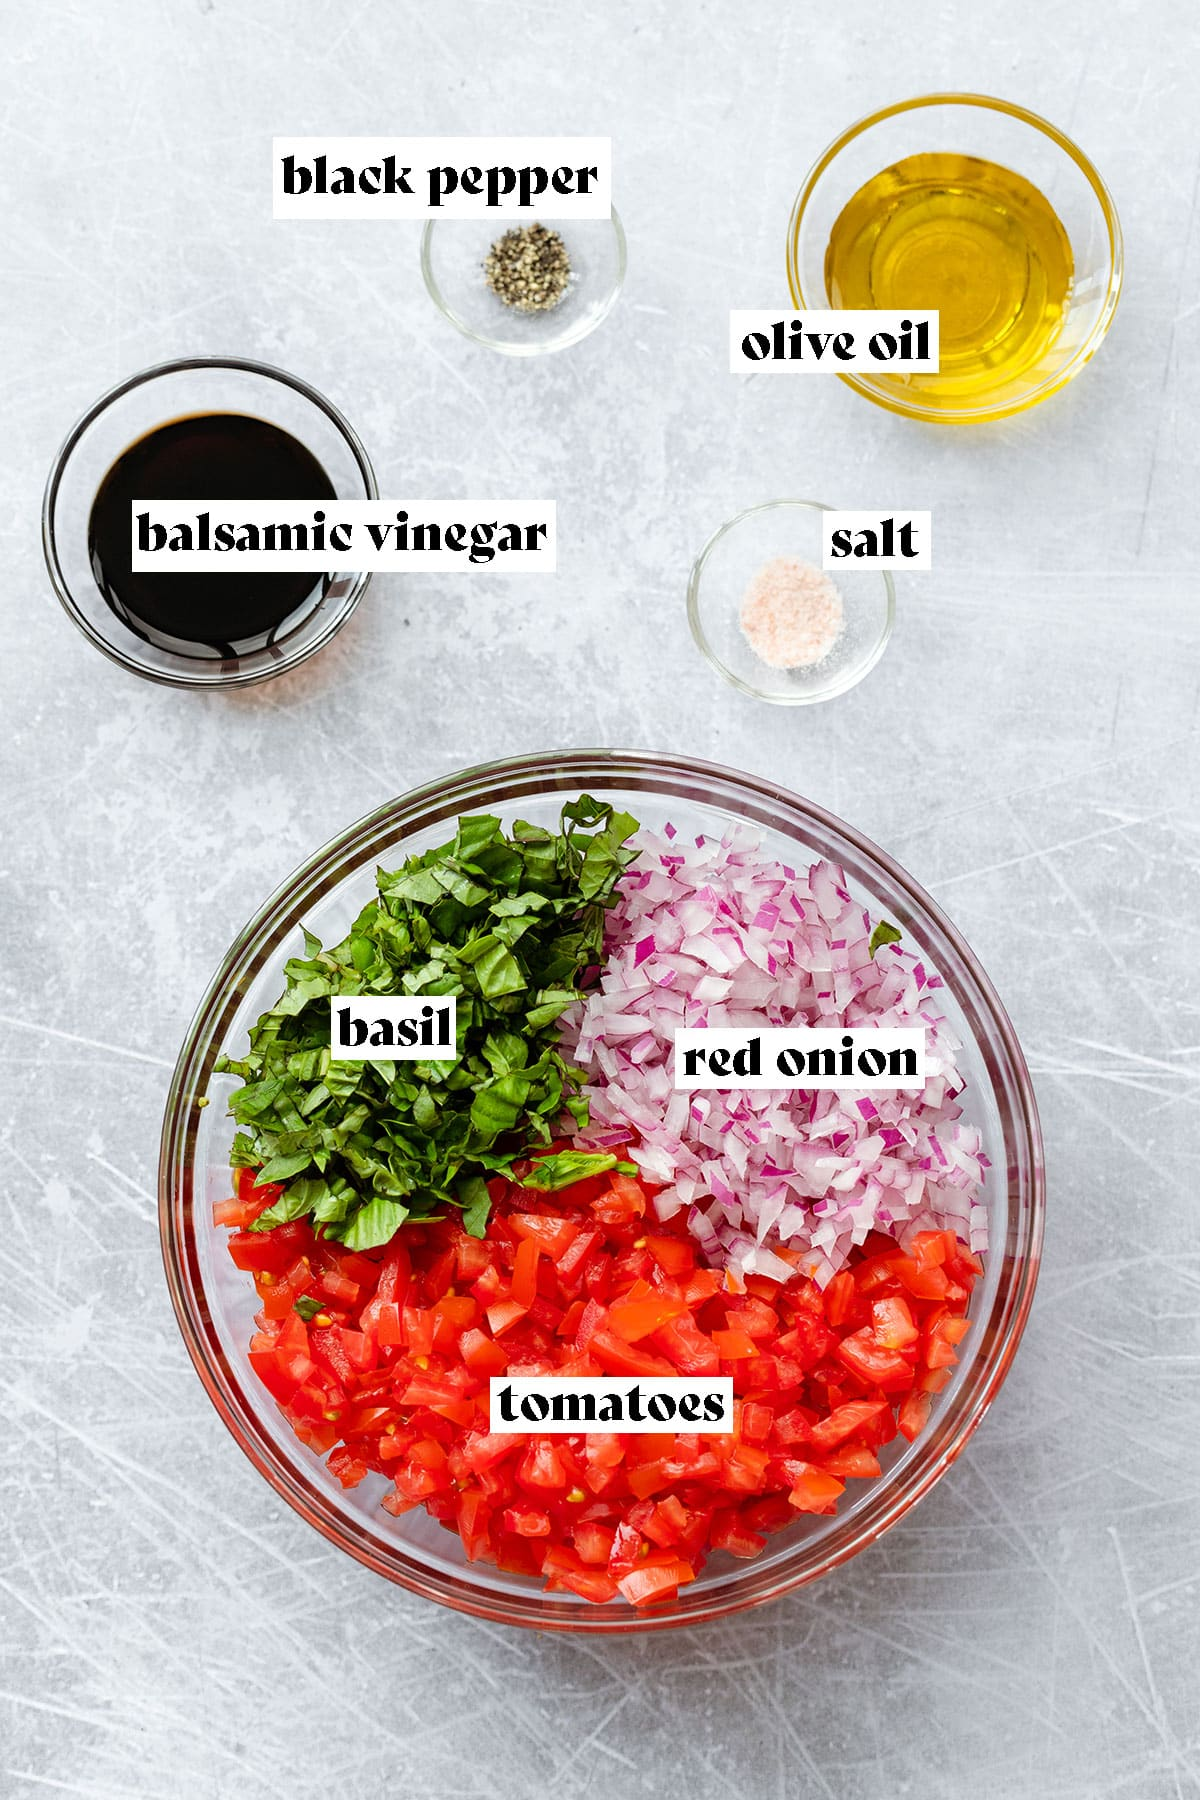 Ingredients for bruschetta with mozzarela laid out on a scratched metal background. Tomatoes, basil, red onion, olive oil, salt, black pepper, and balsamic vinegar.